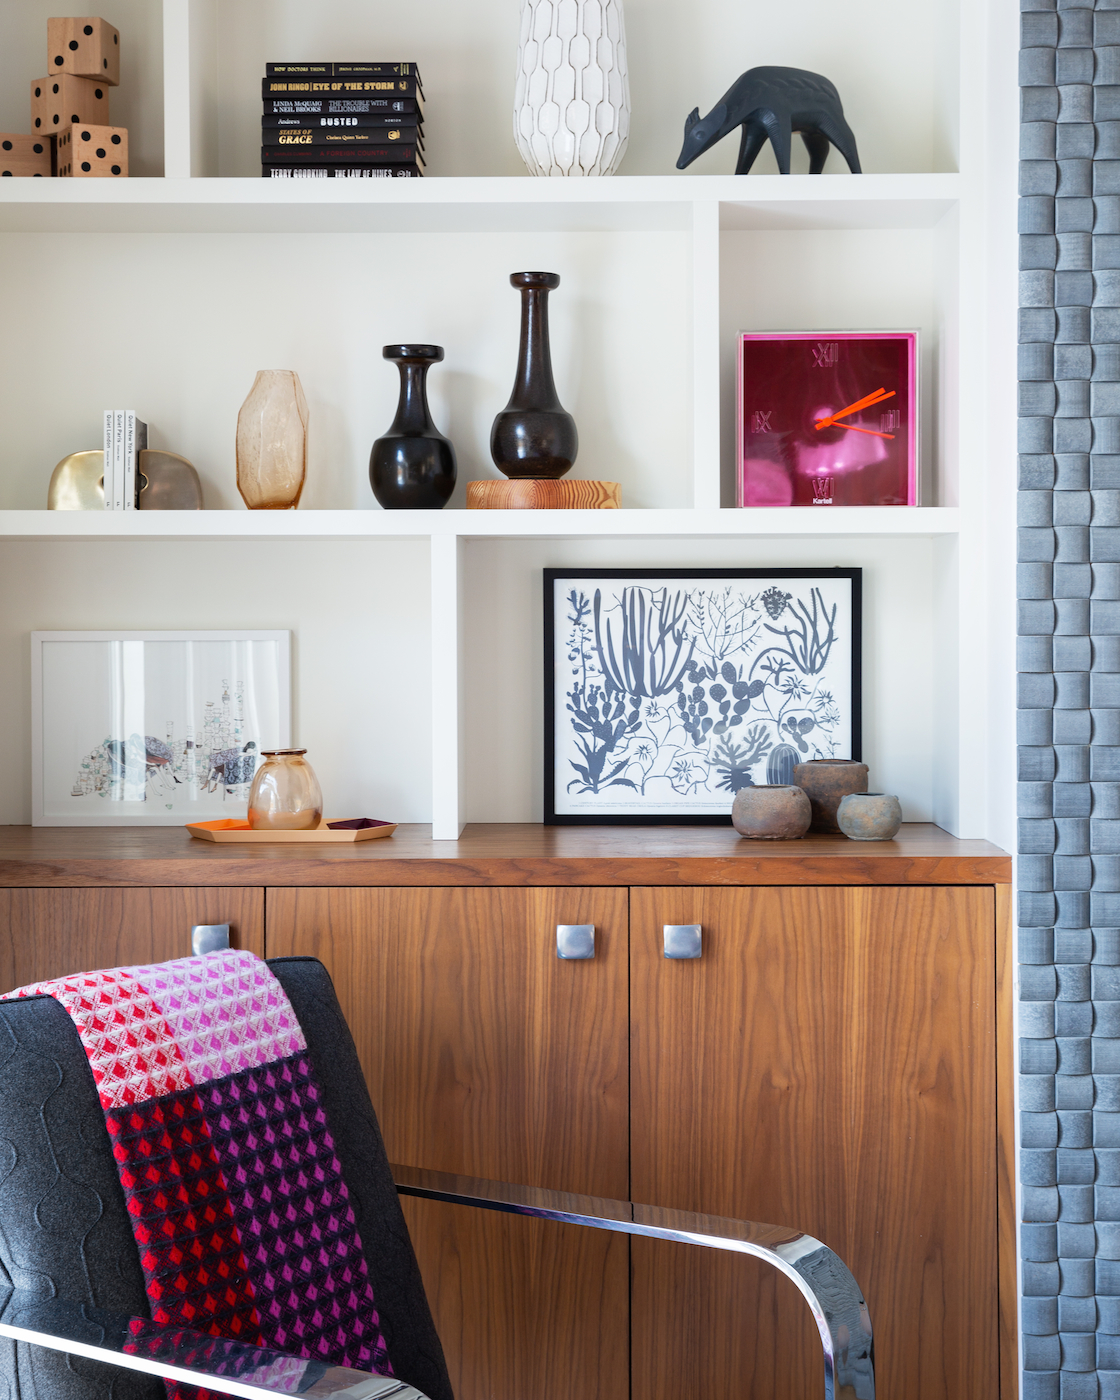 Essential Styling Accessories for Your Shelves, Calgary Interior Designer, Nyla Free Designs #styling #protips #designerlife #shelfie